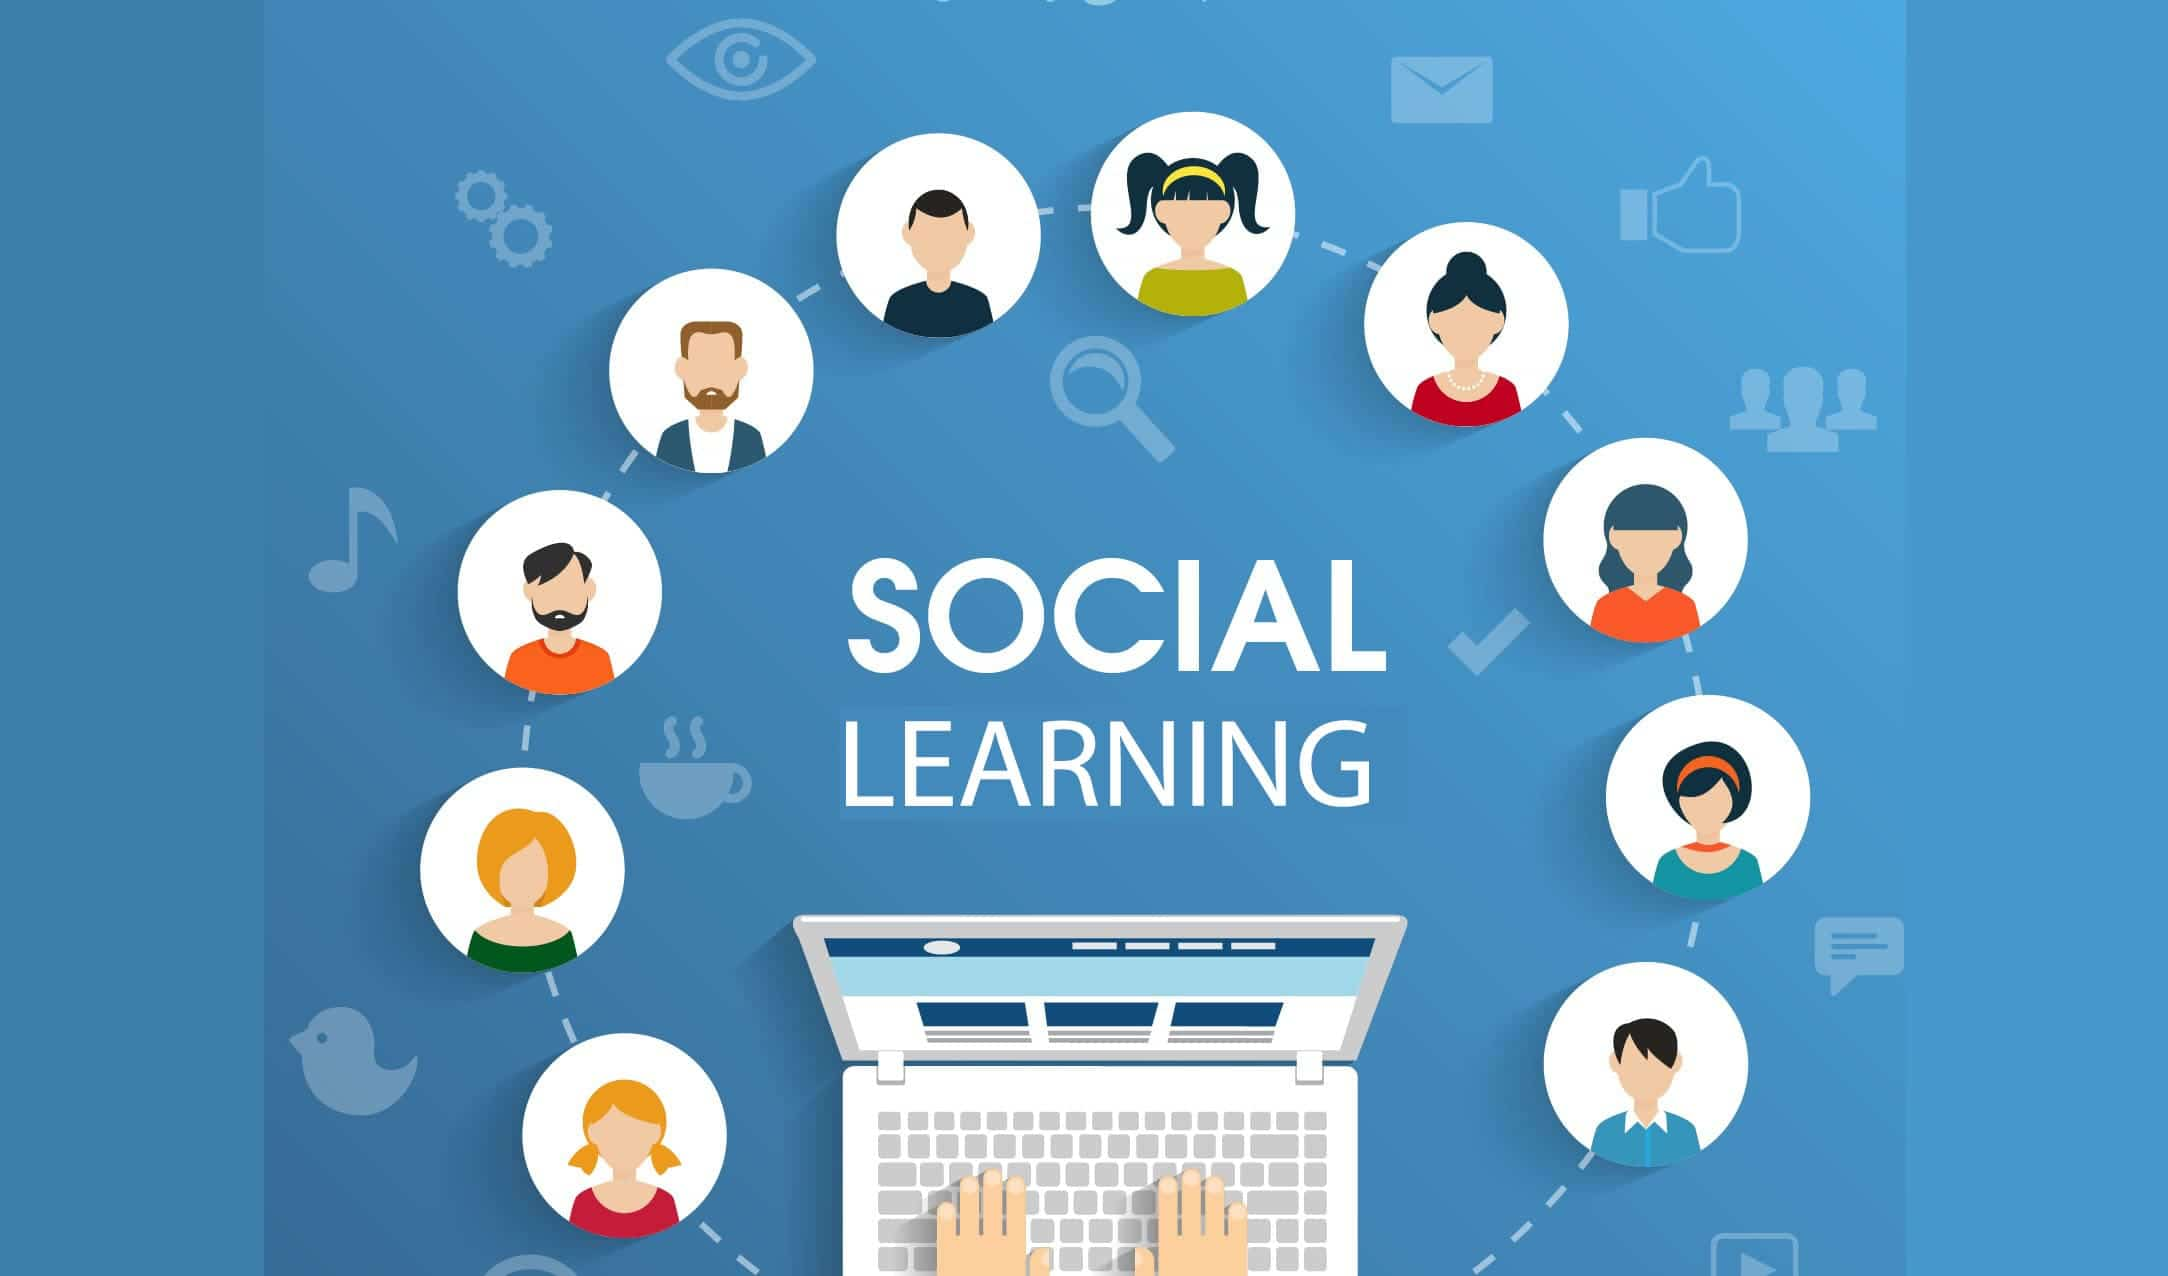 Social Learning Theory - Edtechreview™ (ETR)